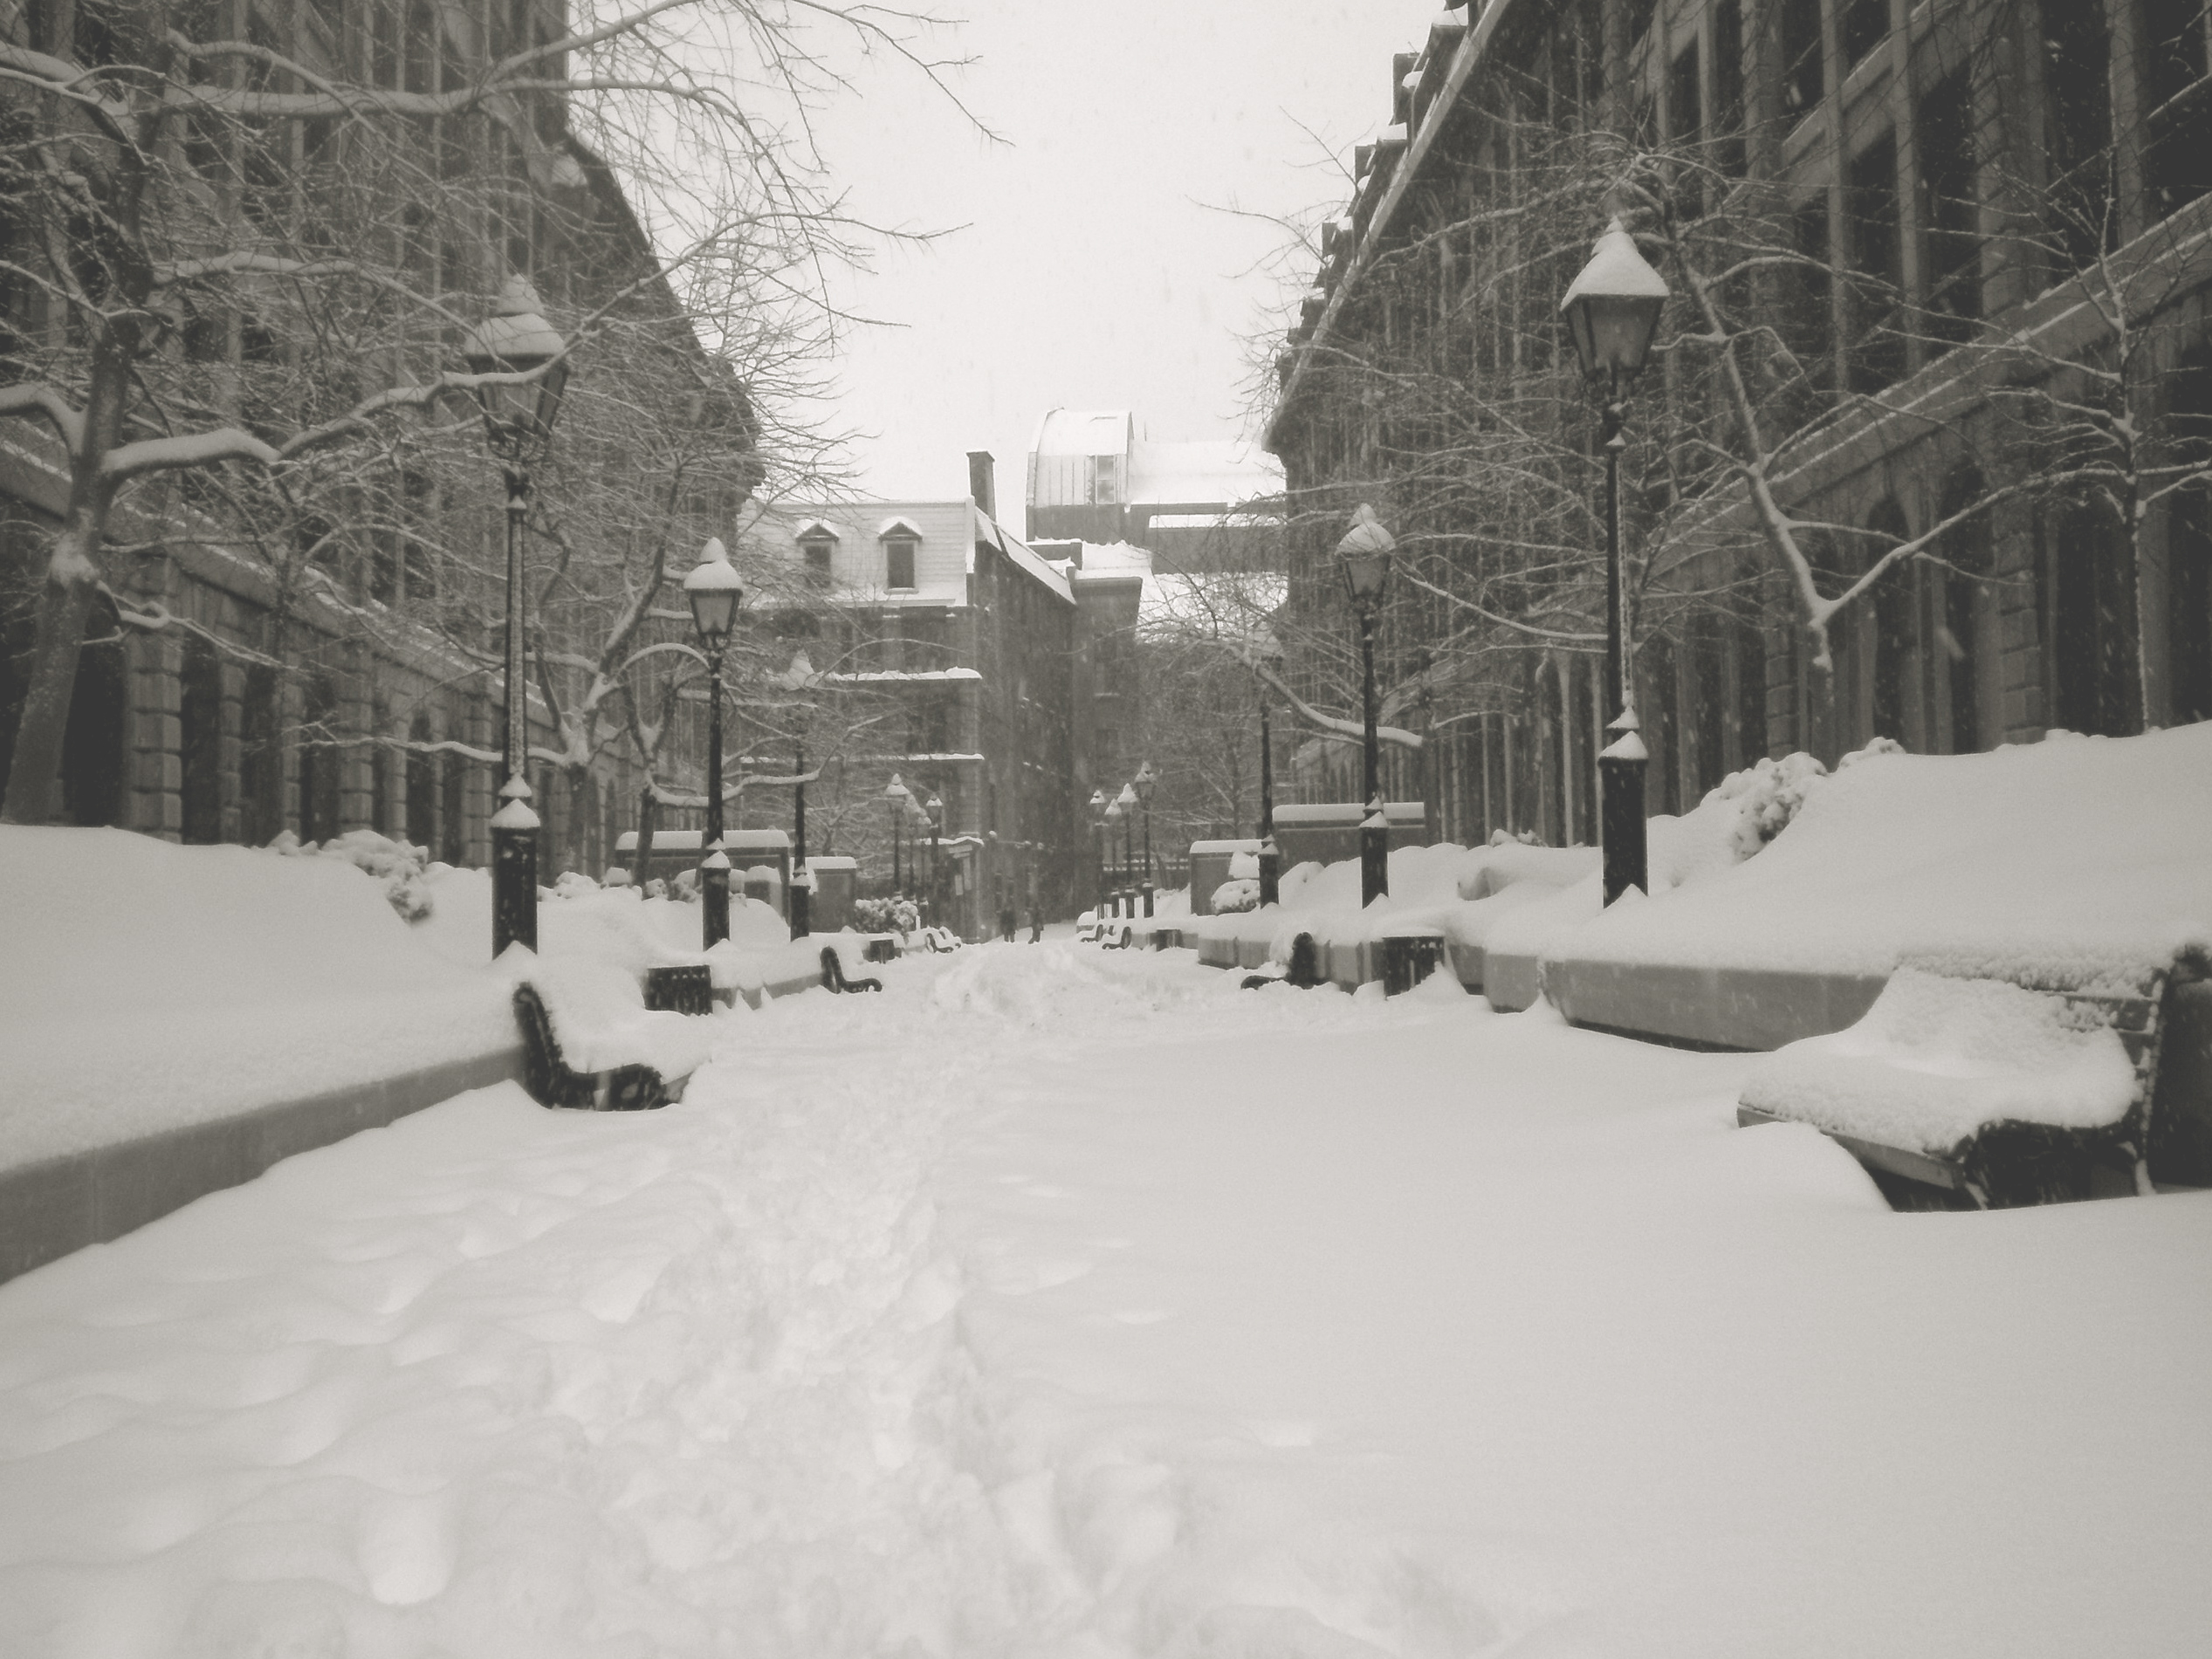 12 Of The Worst Winter Storms In The History Of Montreal - MTL Blog